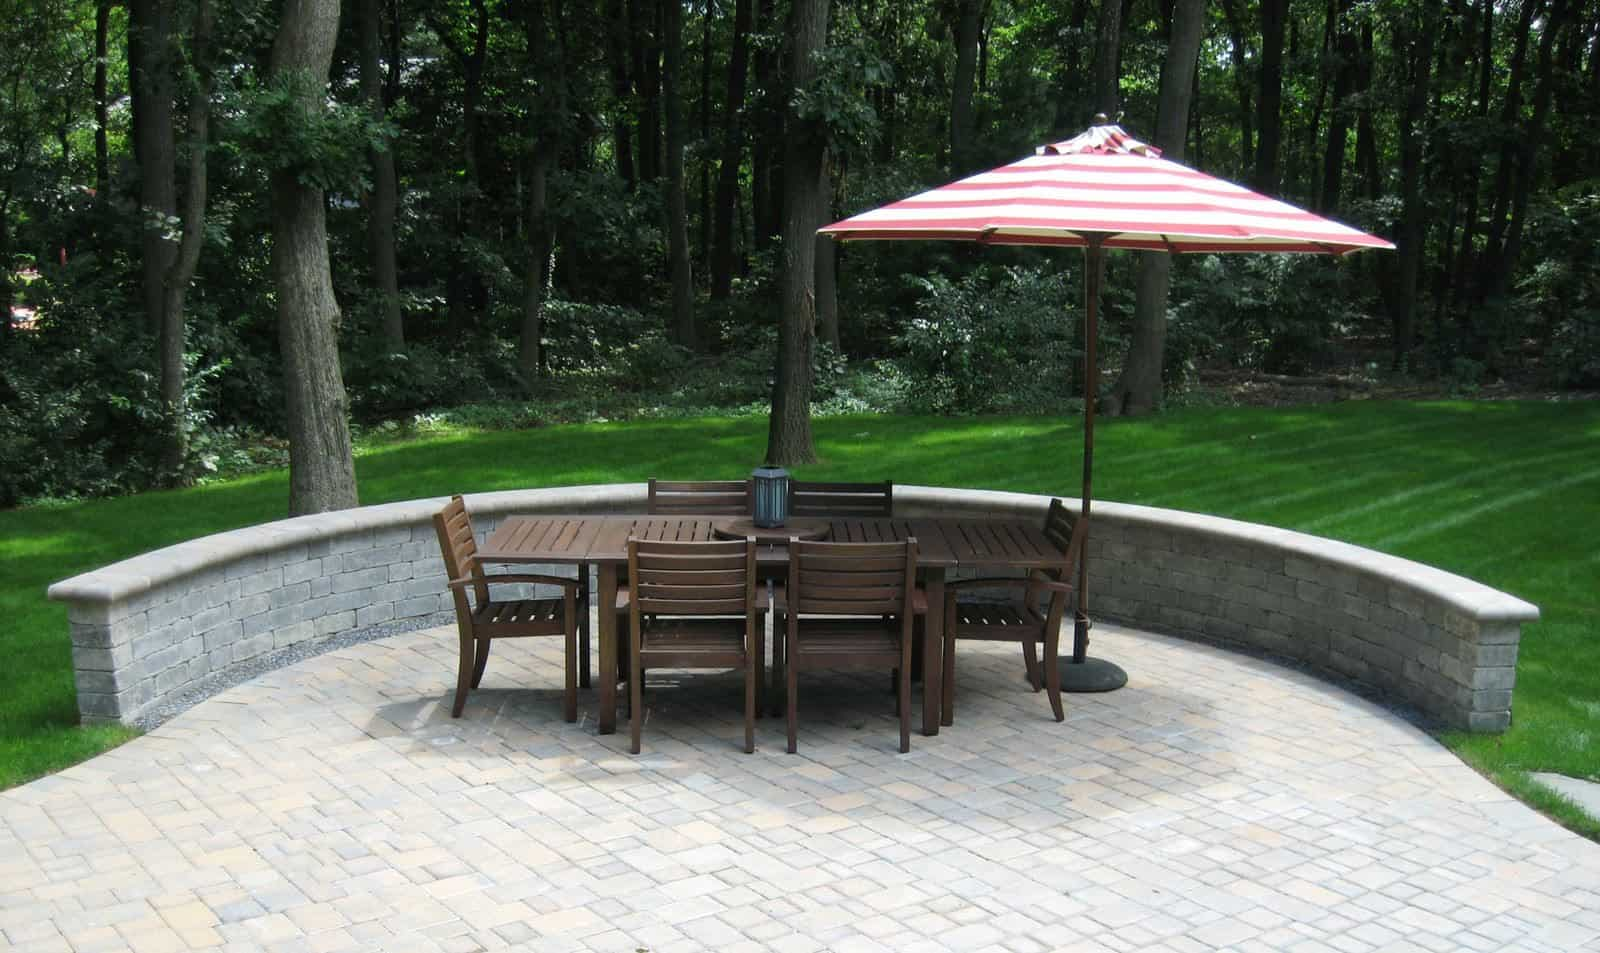 Paver Patio - Cambridge Ledgestone-Toffee/Onyx Paver Patio- Random Pattern with Unilock Brussells Seat Wall - Dix Hills, Long Island NY